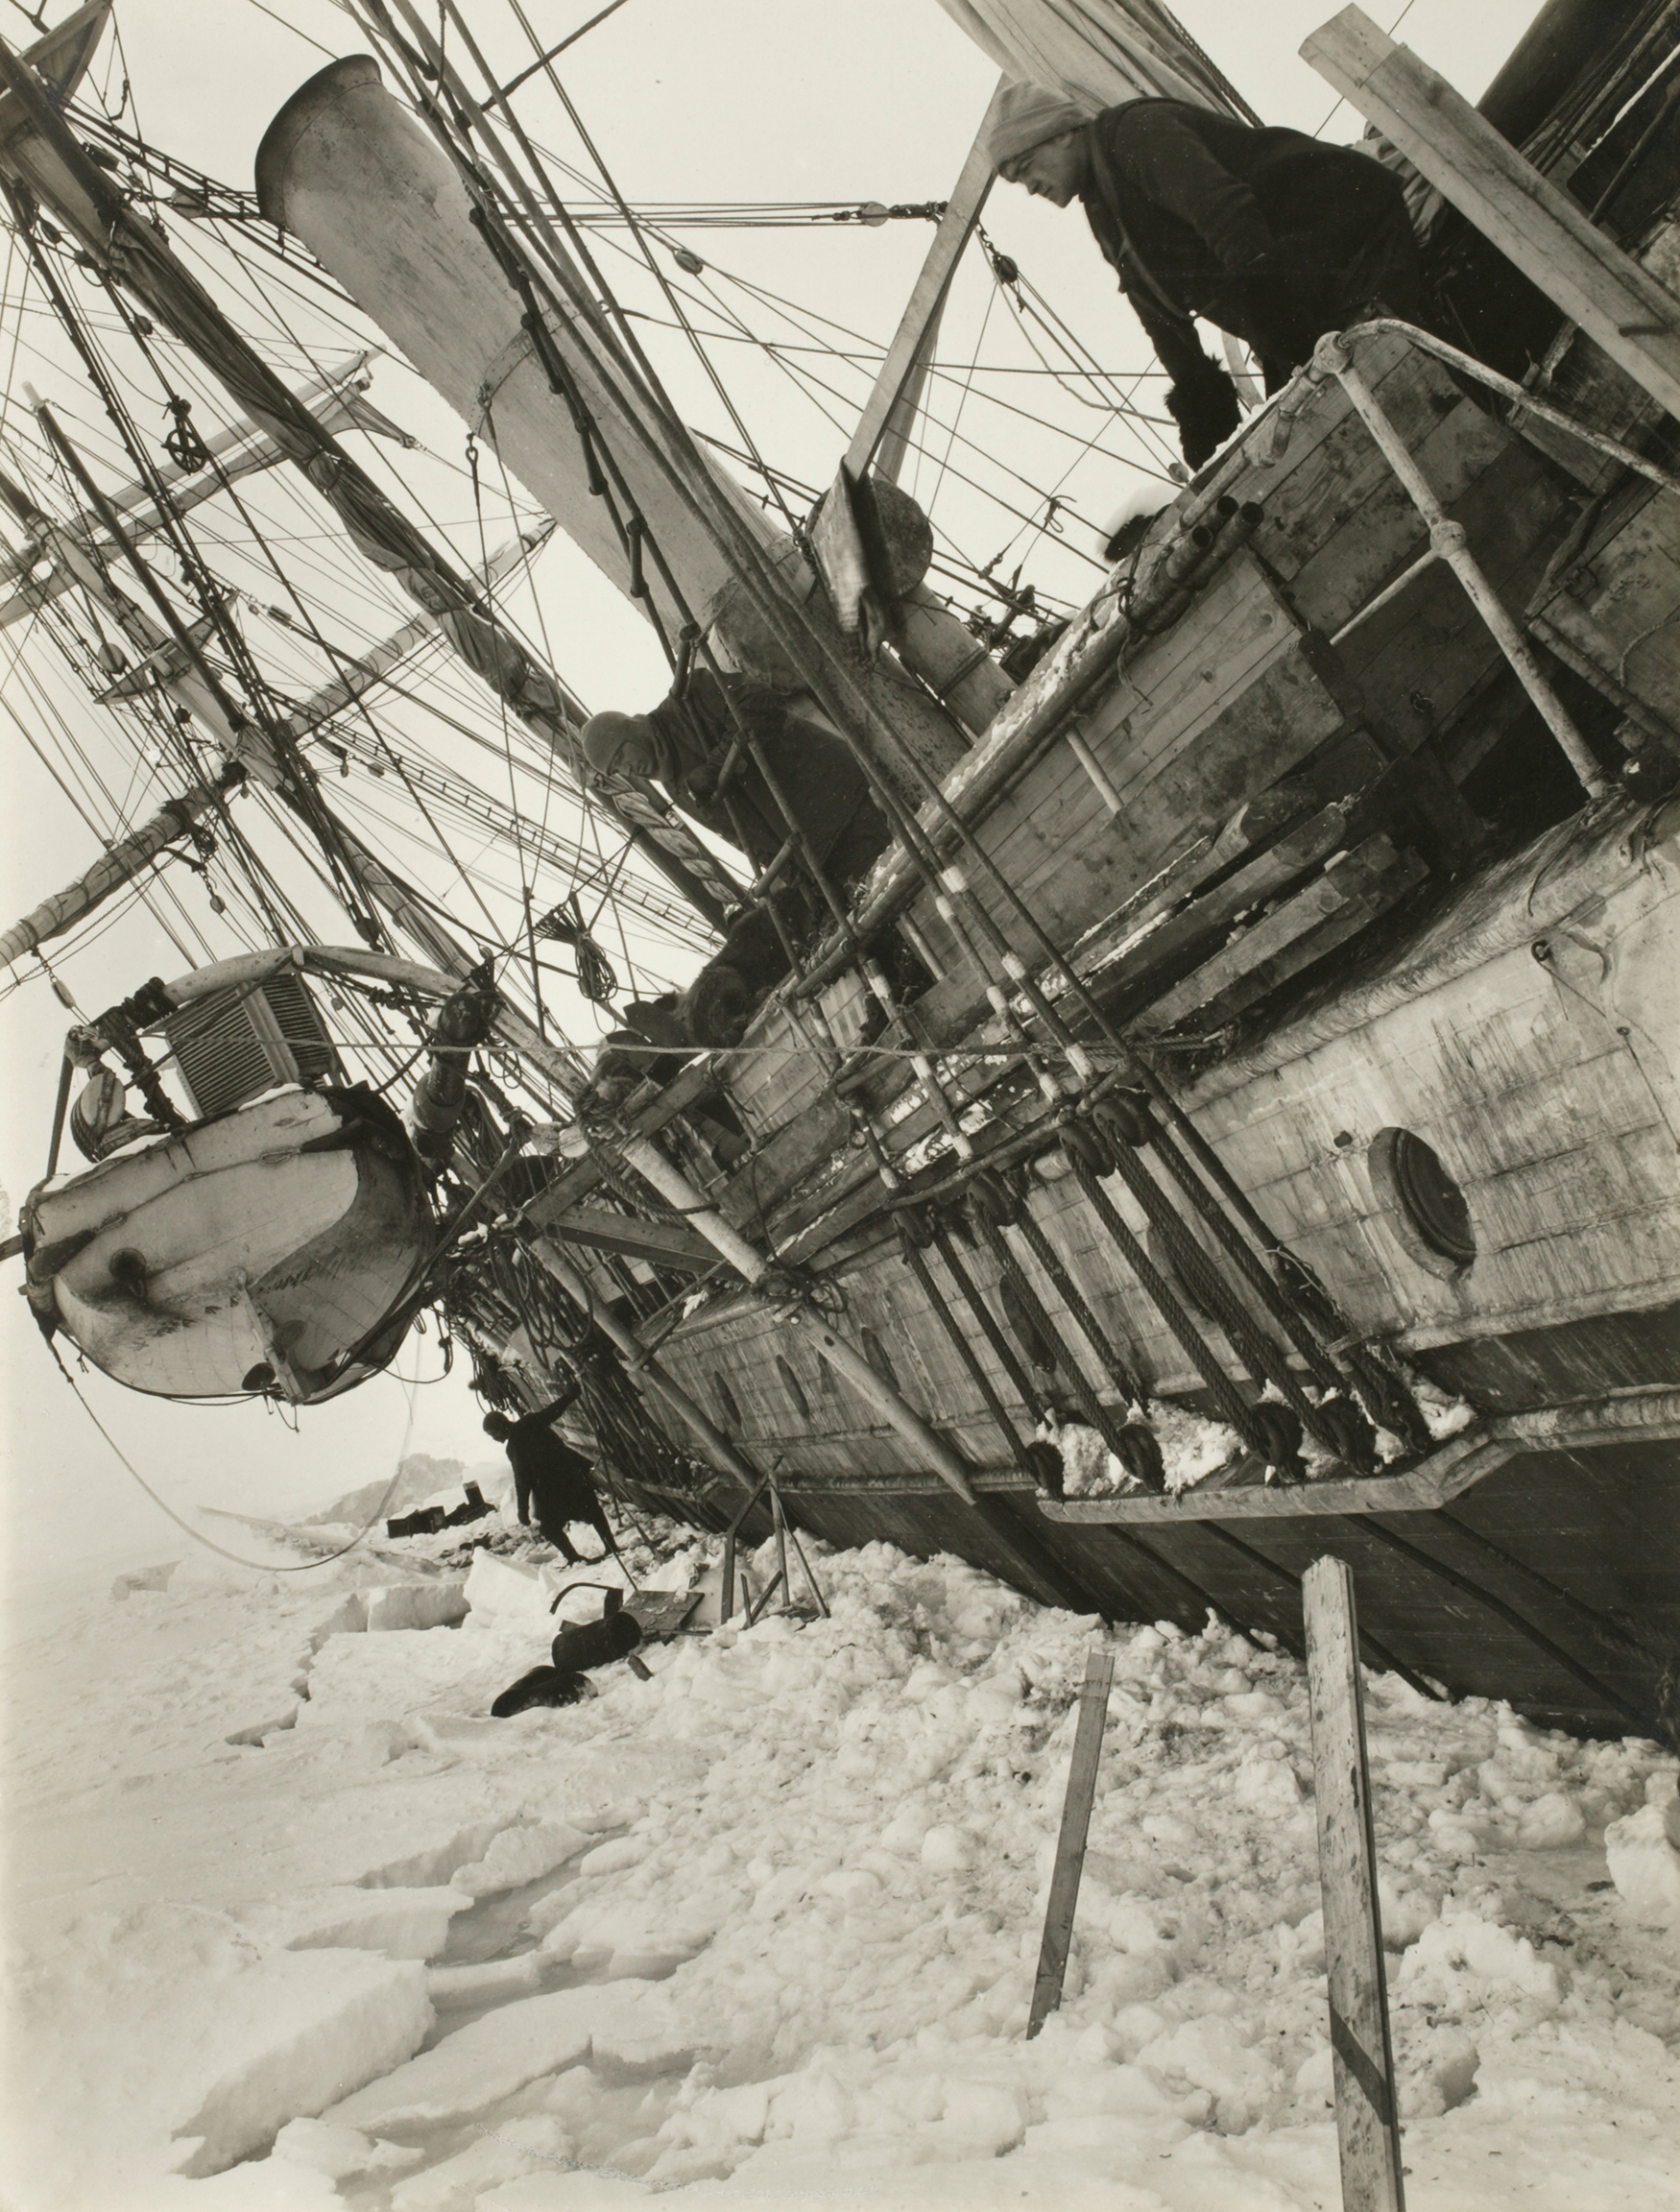 Shackleton watches the Endurance sink